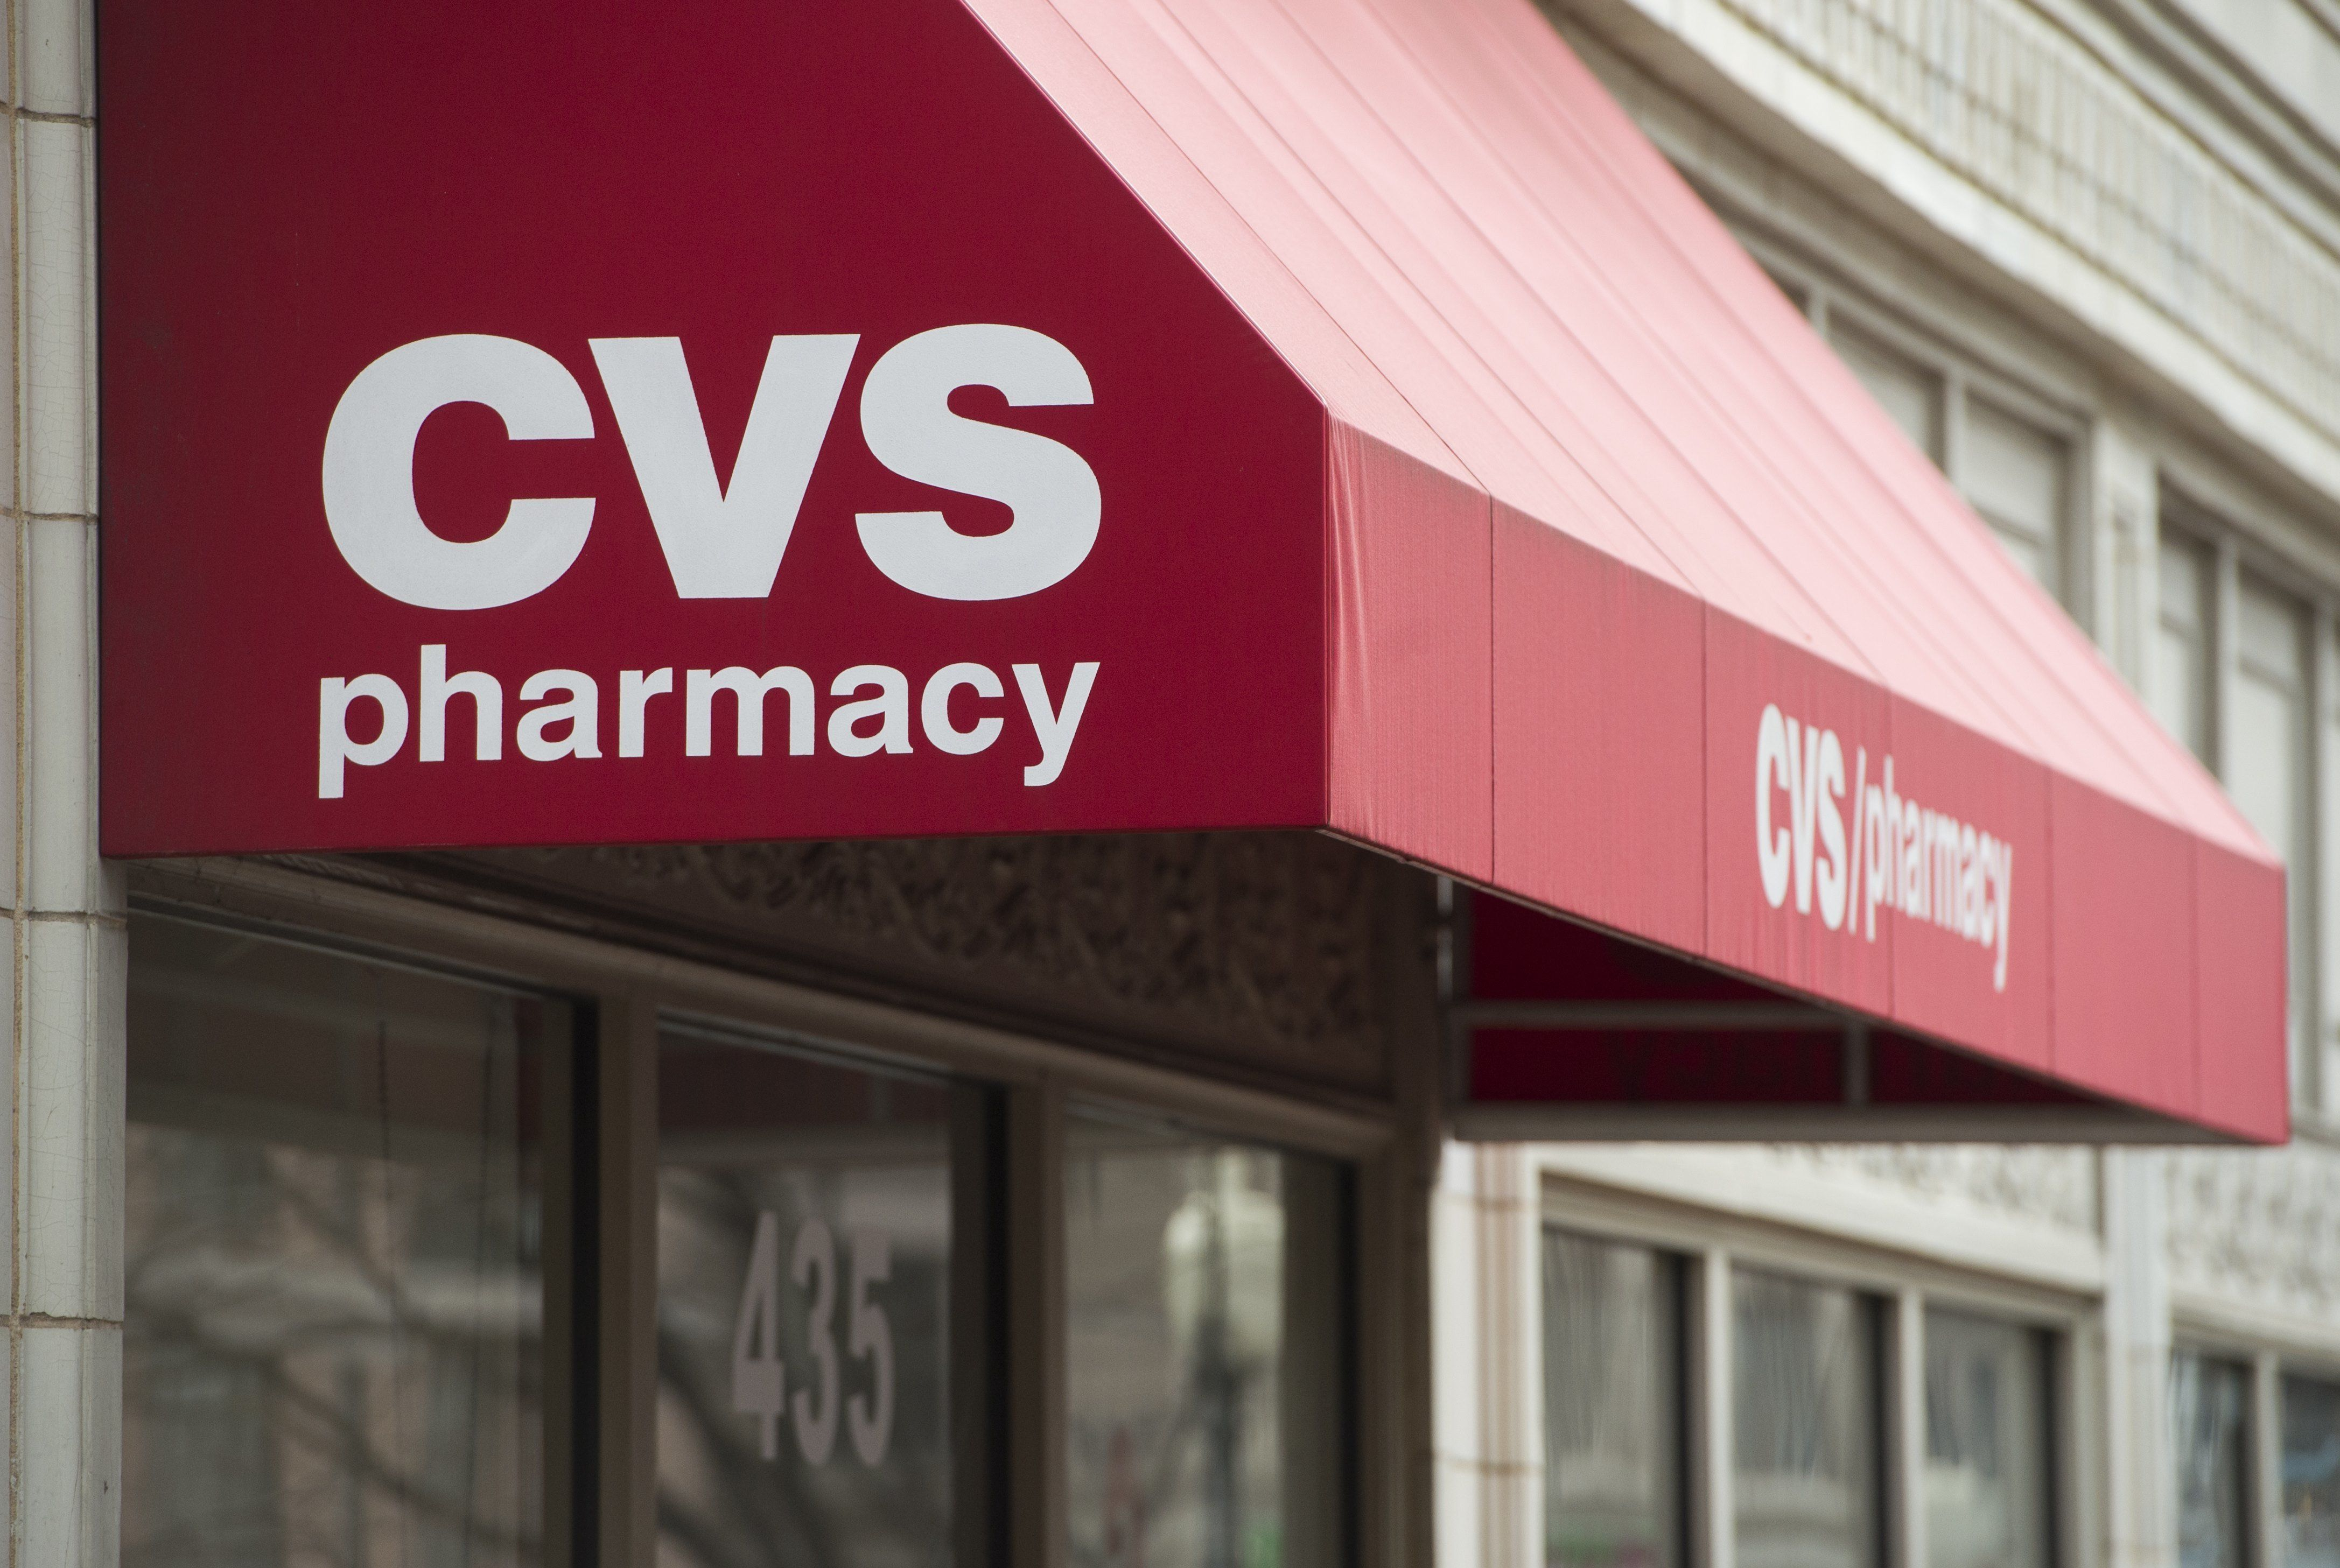 CVS said the pharmacist who harassed a customer is no longer employed but declined to give more specific details.